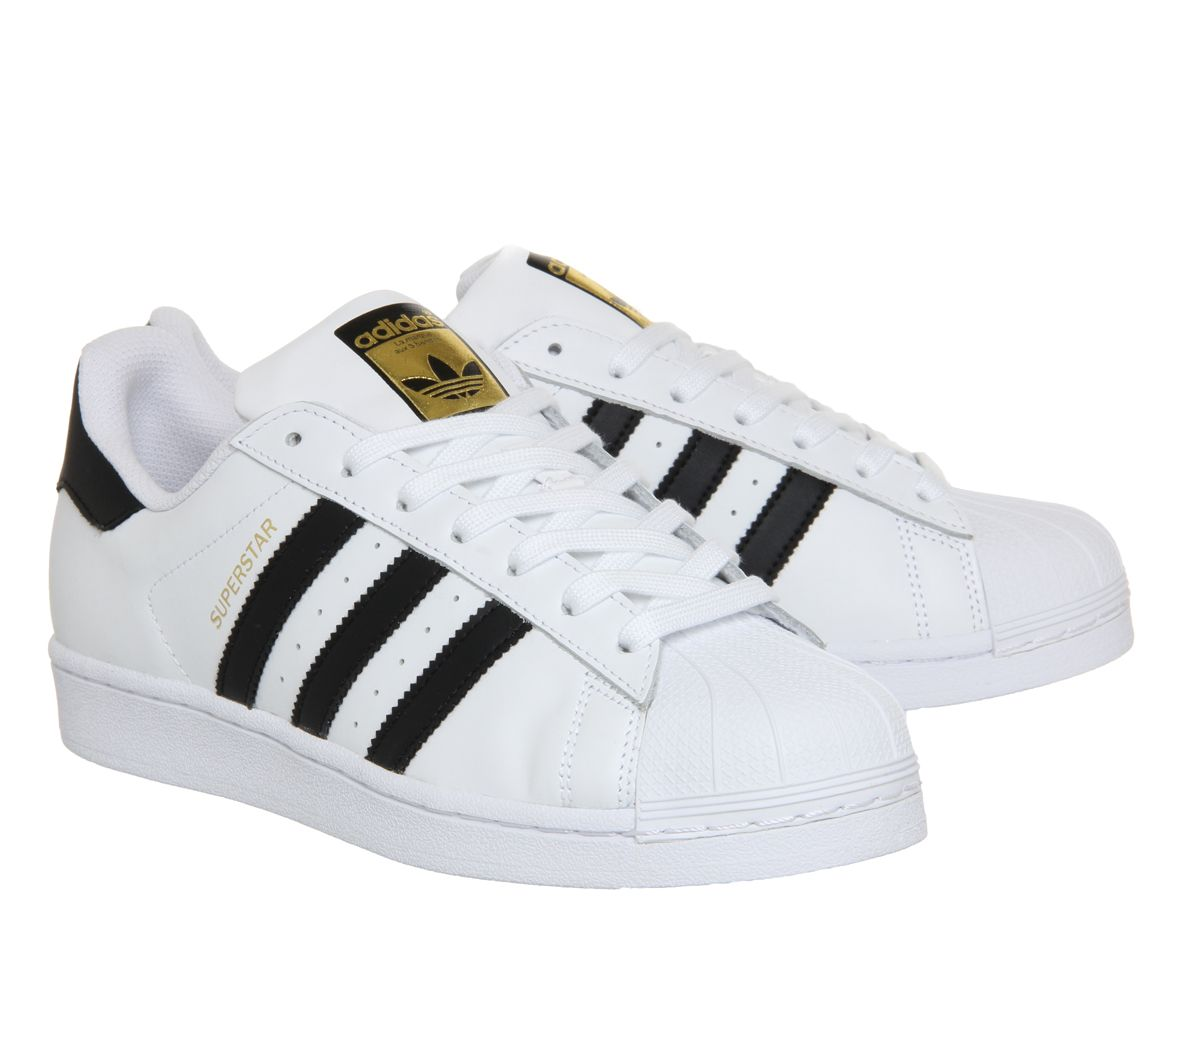 official photos 063fa 27cc2 Sentinel Mens Adidas Superstar 1 White Black Foundation Trainers Shoes